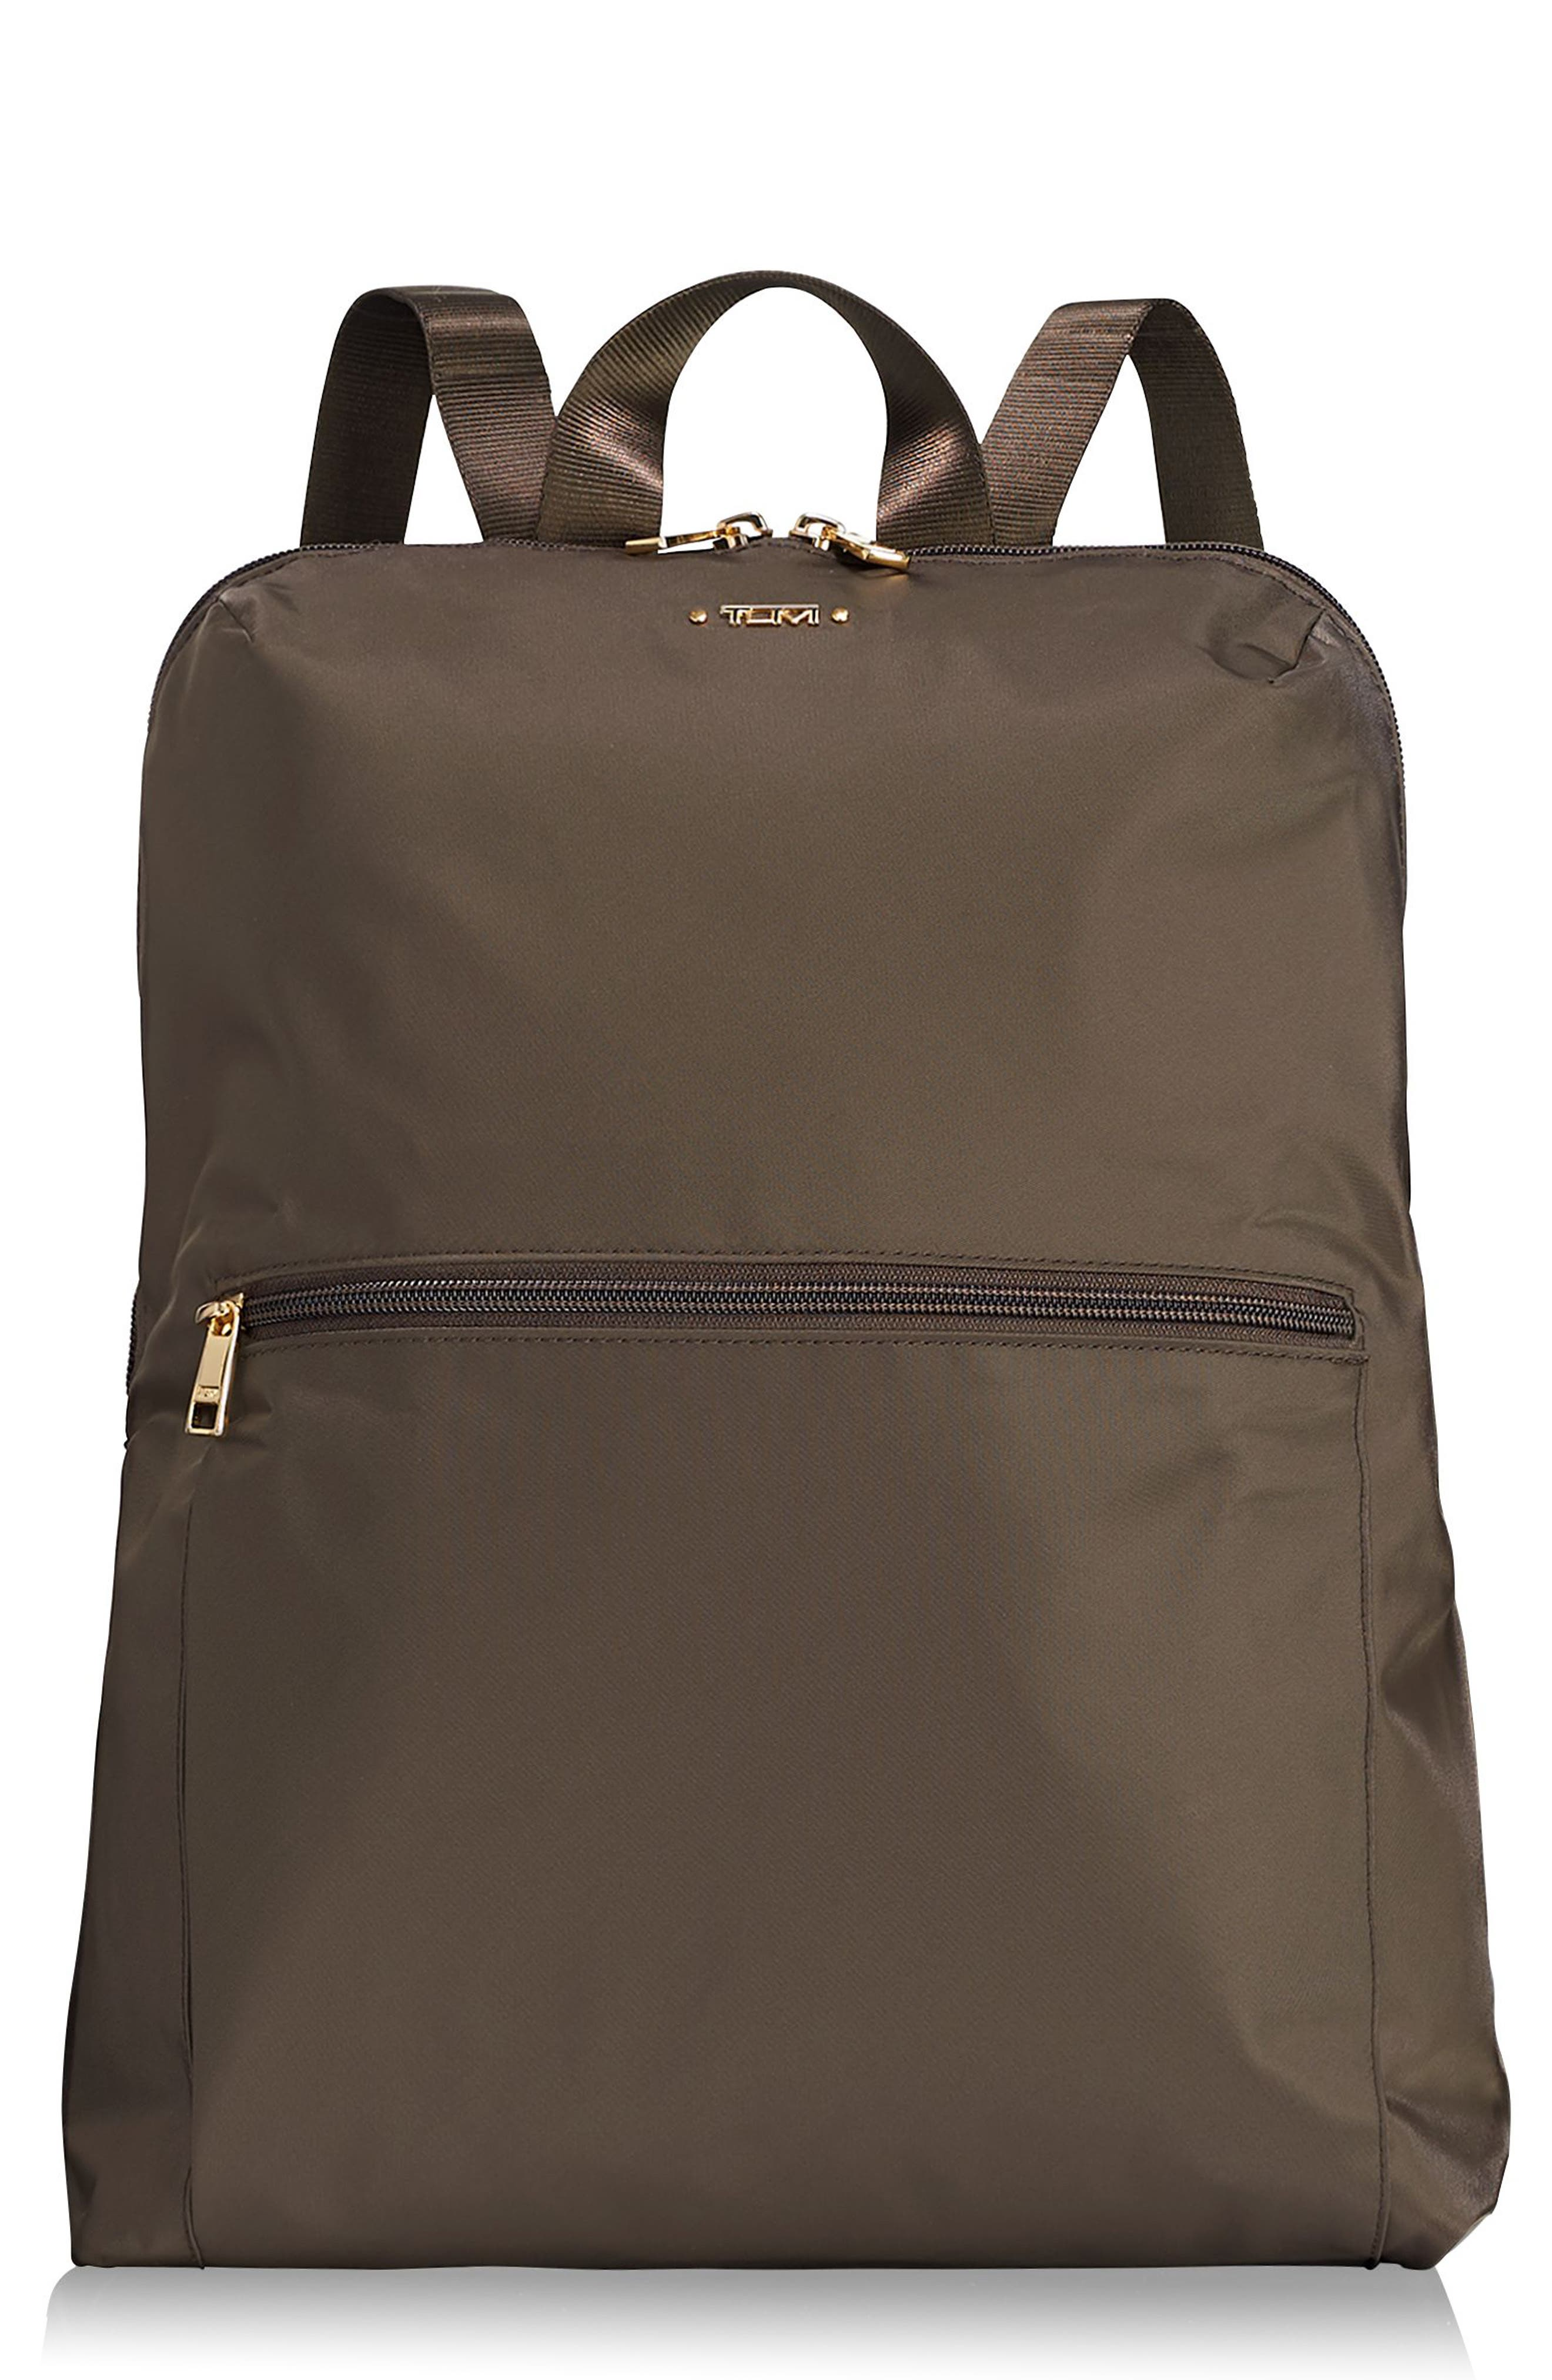 TUMI Voyageur - Just in Case Nylon Travel Backpack, Main, color, MINK